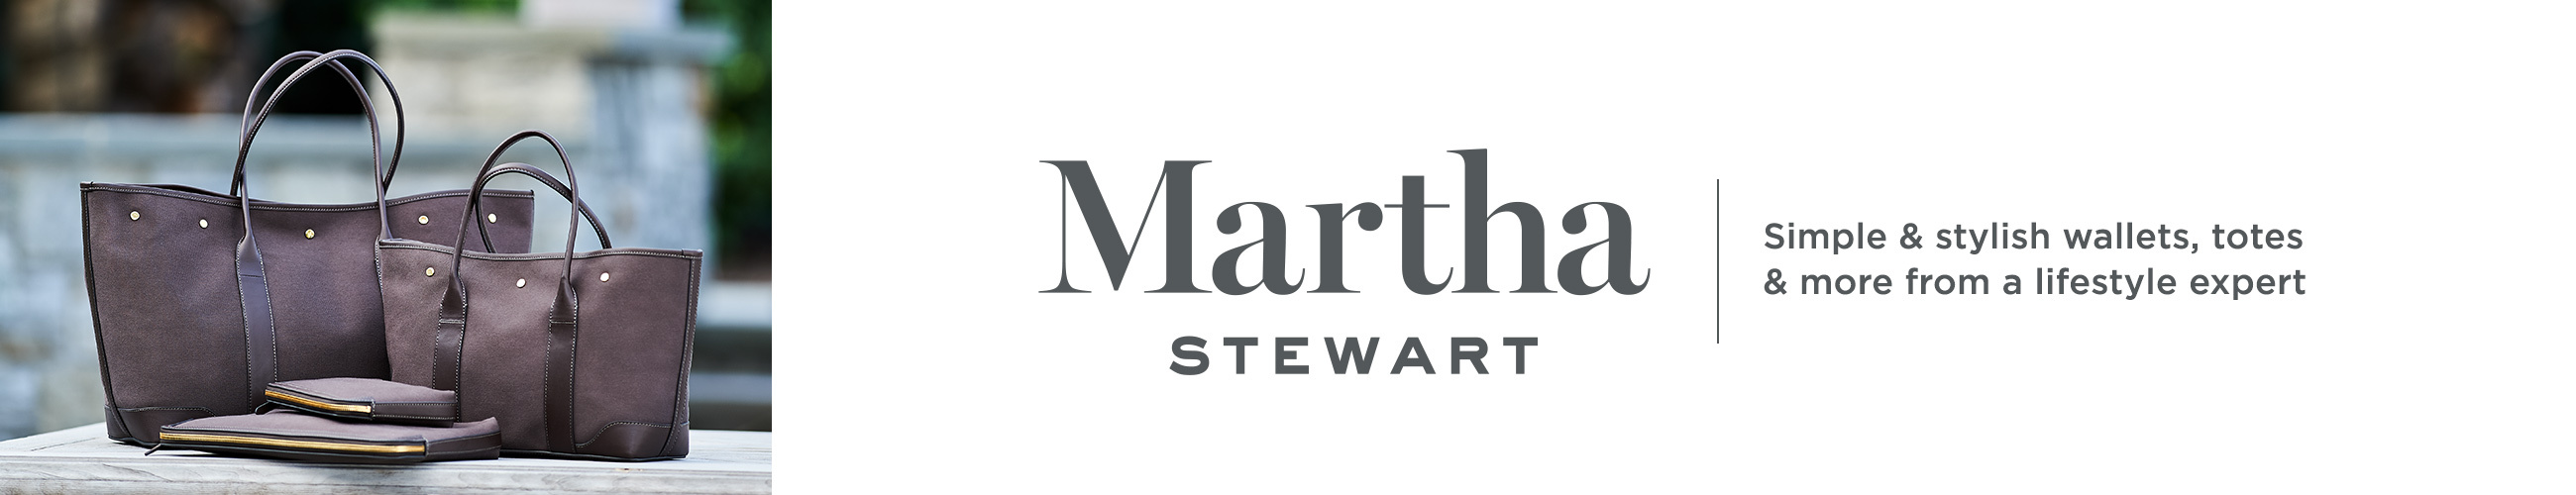 Martha Stewart. Simple & stylish wallets, totes & more from a lifestyle expert